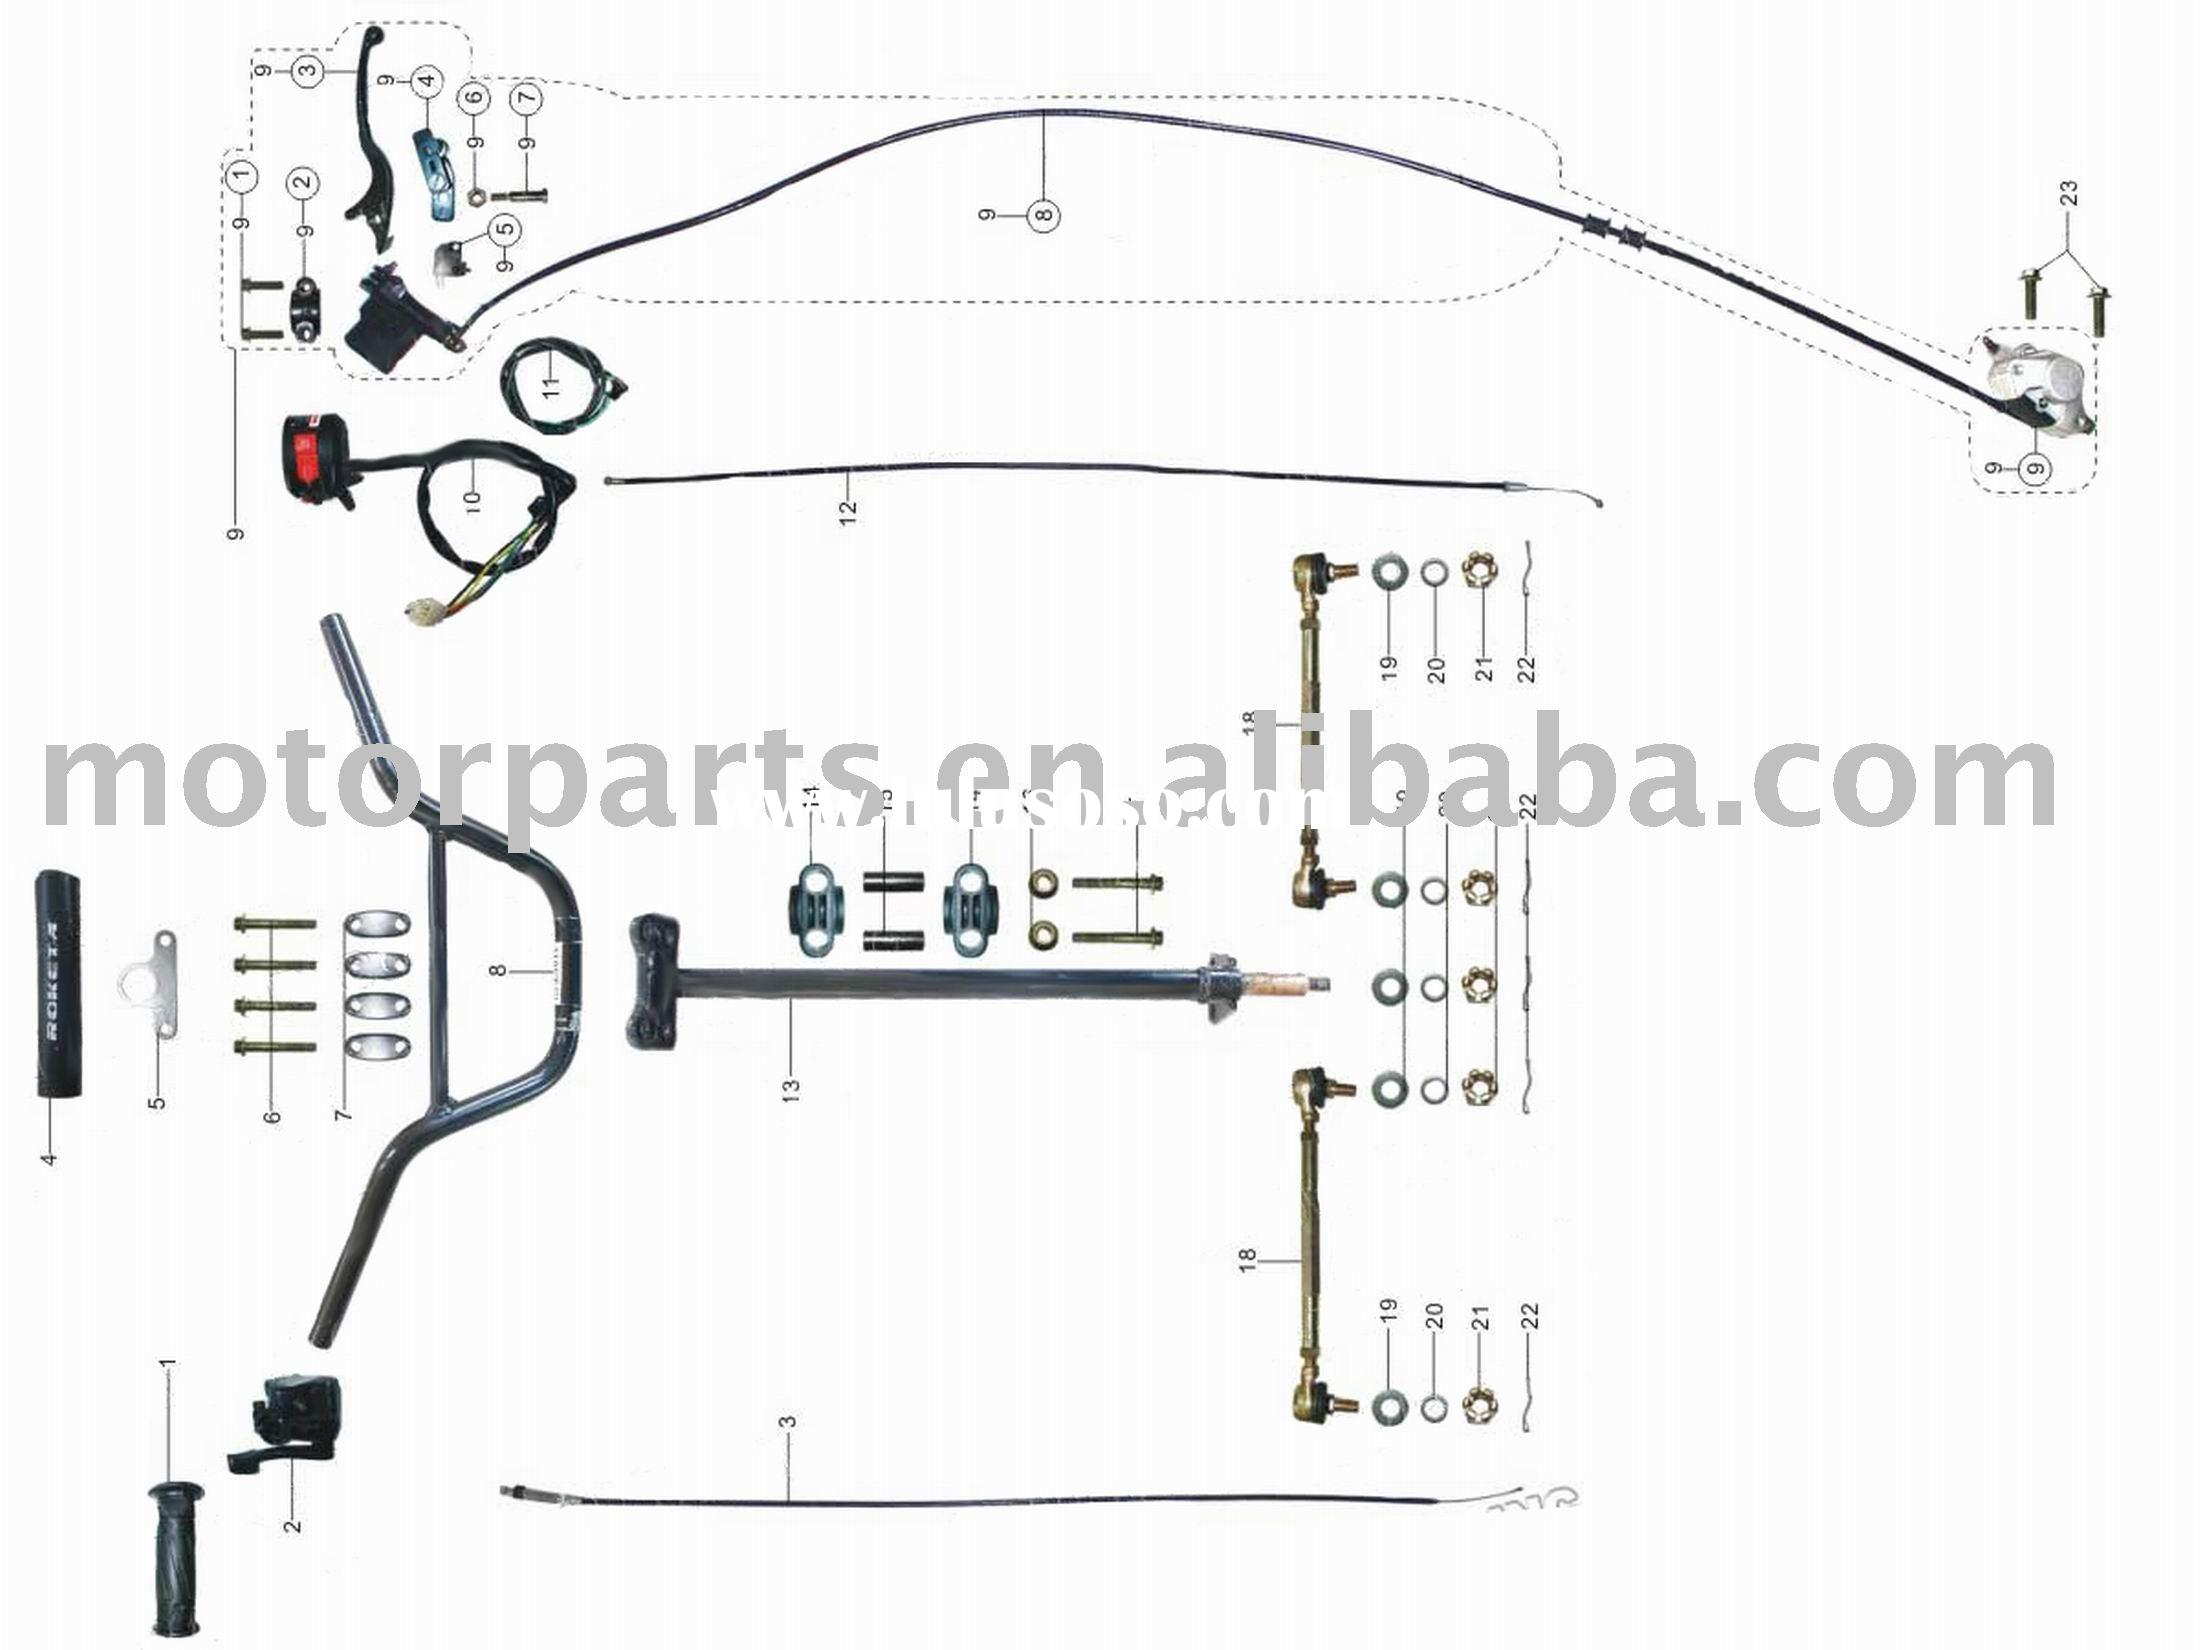 Captivating Peace Sports 110 Atv Wiring Diagram Gallery - Best Image ...